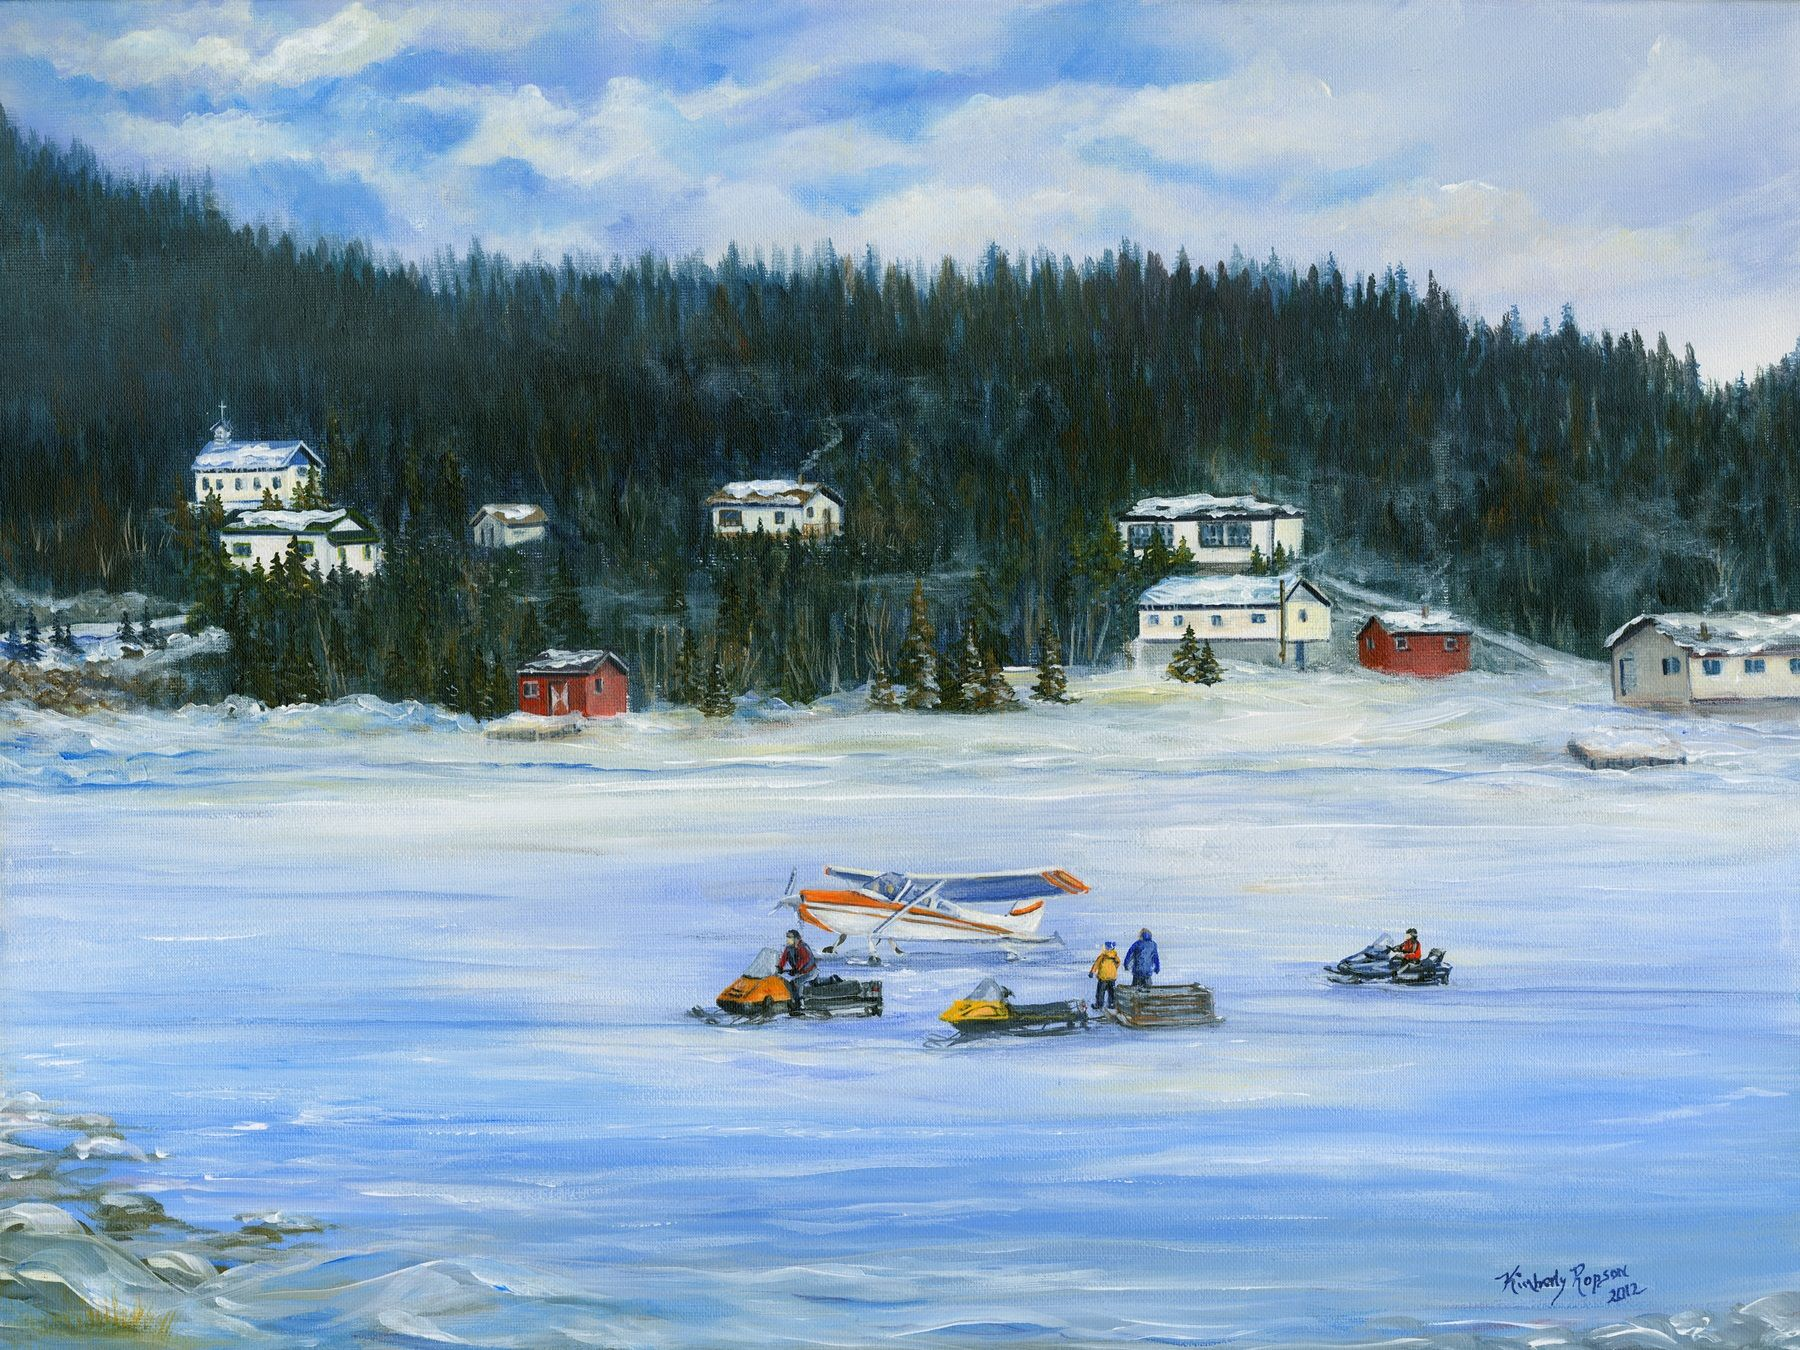 'Mail Run', Great Harbour Deep, NL - Resettled in 2002  (Acrylic Painting by Kimberly Ropson)